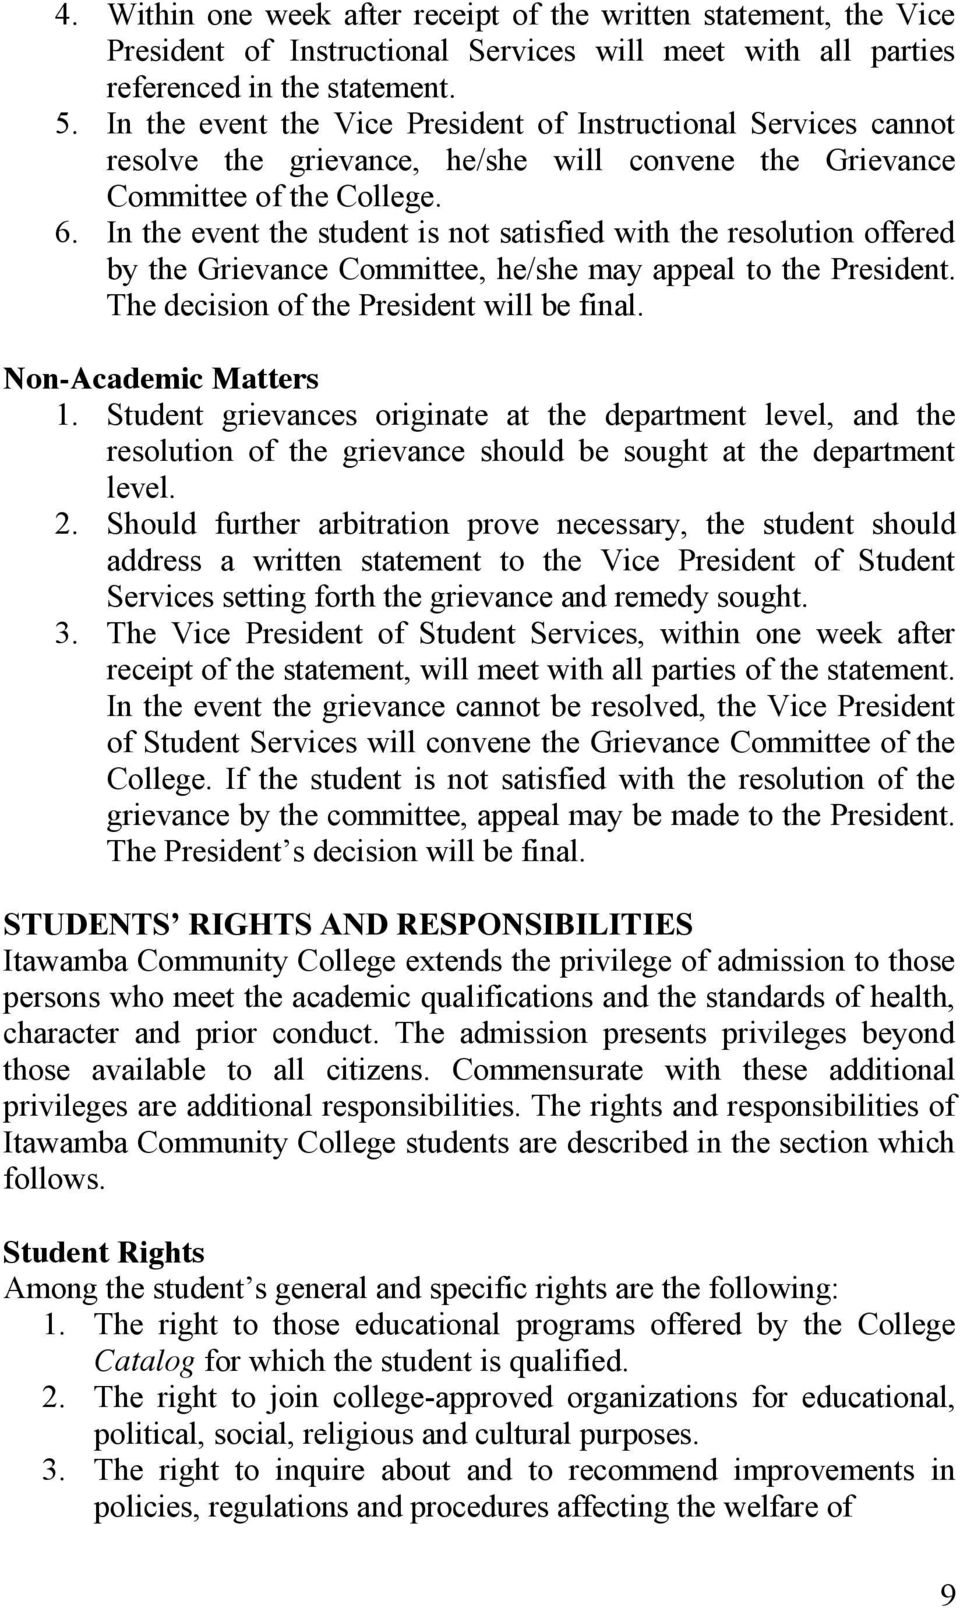 In the event the student is not satisfied with the resolution offered by the Grievance Committee, he/she may appeal to the President. The decision of the President will be final.